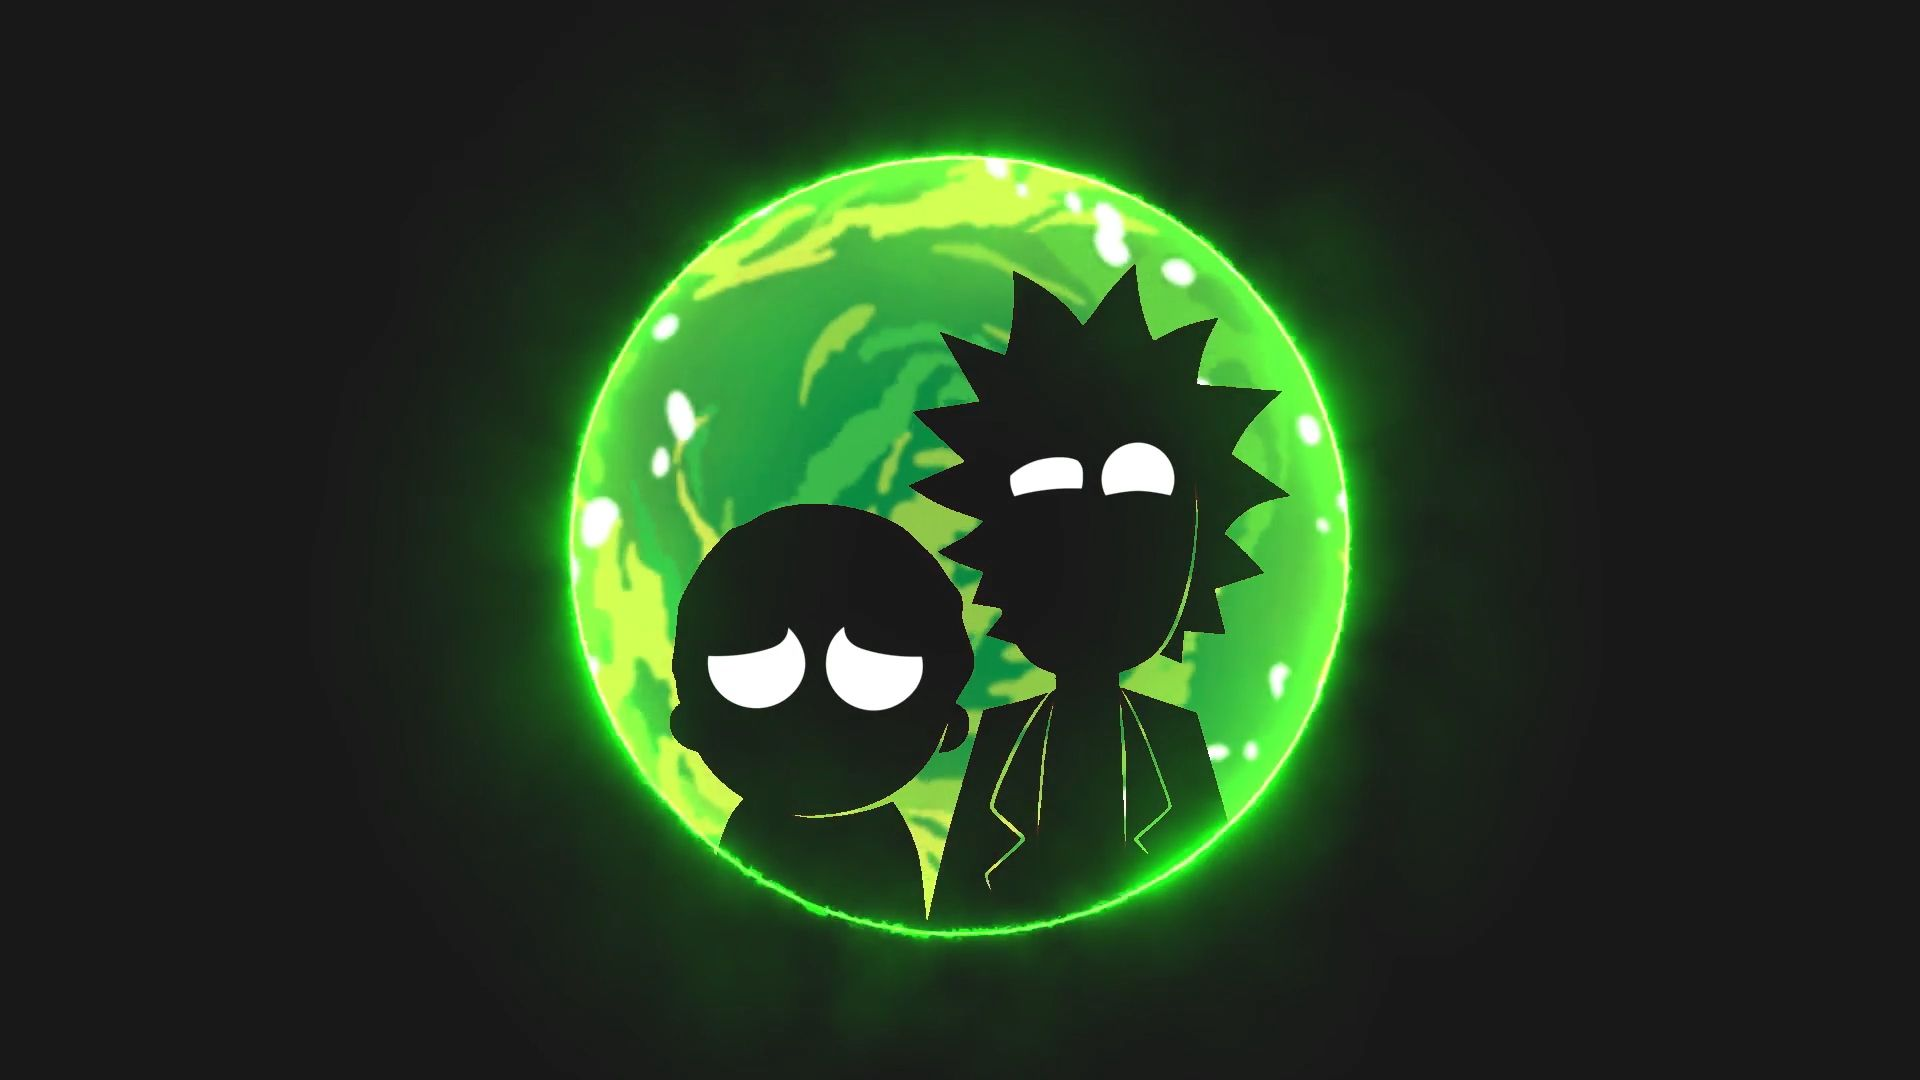 Rick And Morty 4k Wallpapers Wallpaper Cave throughout The 1920x1080